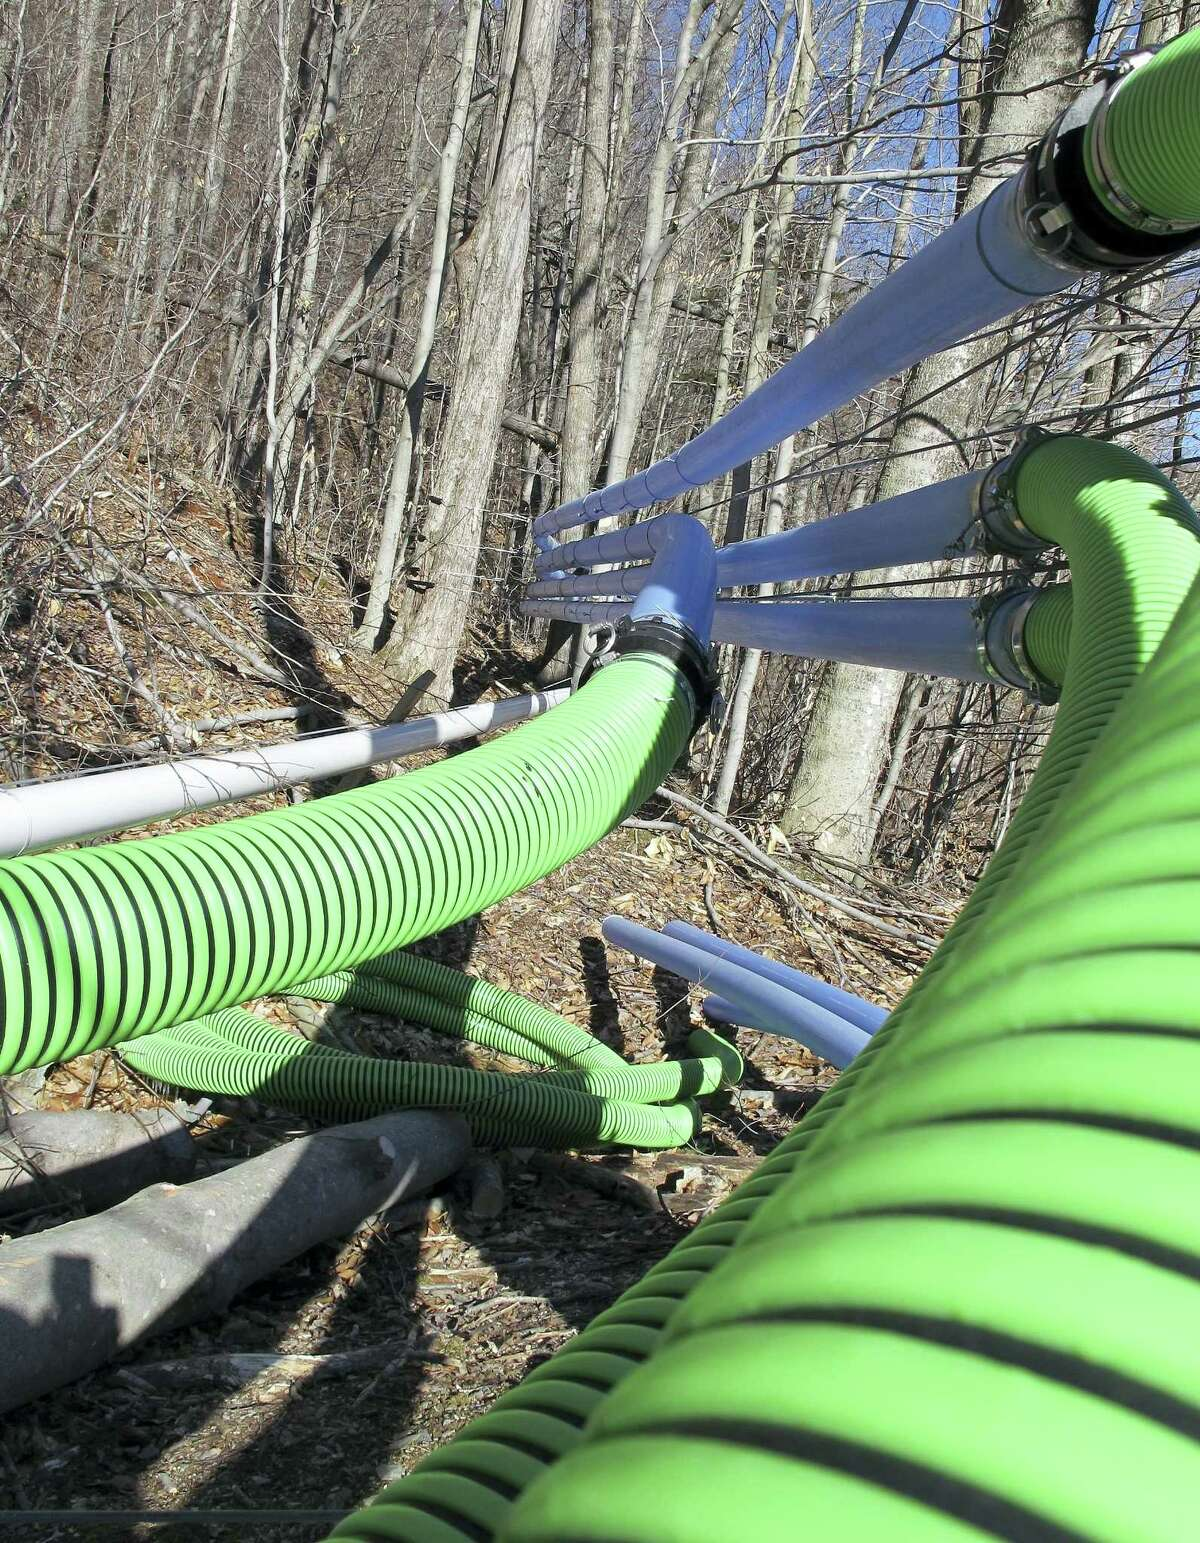 Sap and vacuum lines owned by Crown Maple of Dutchess County, N.Y., run through a forest in Sandgate, Vt.